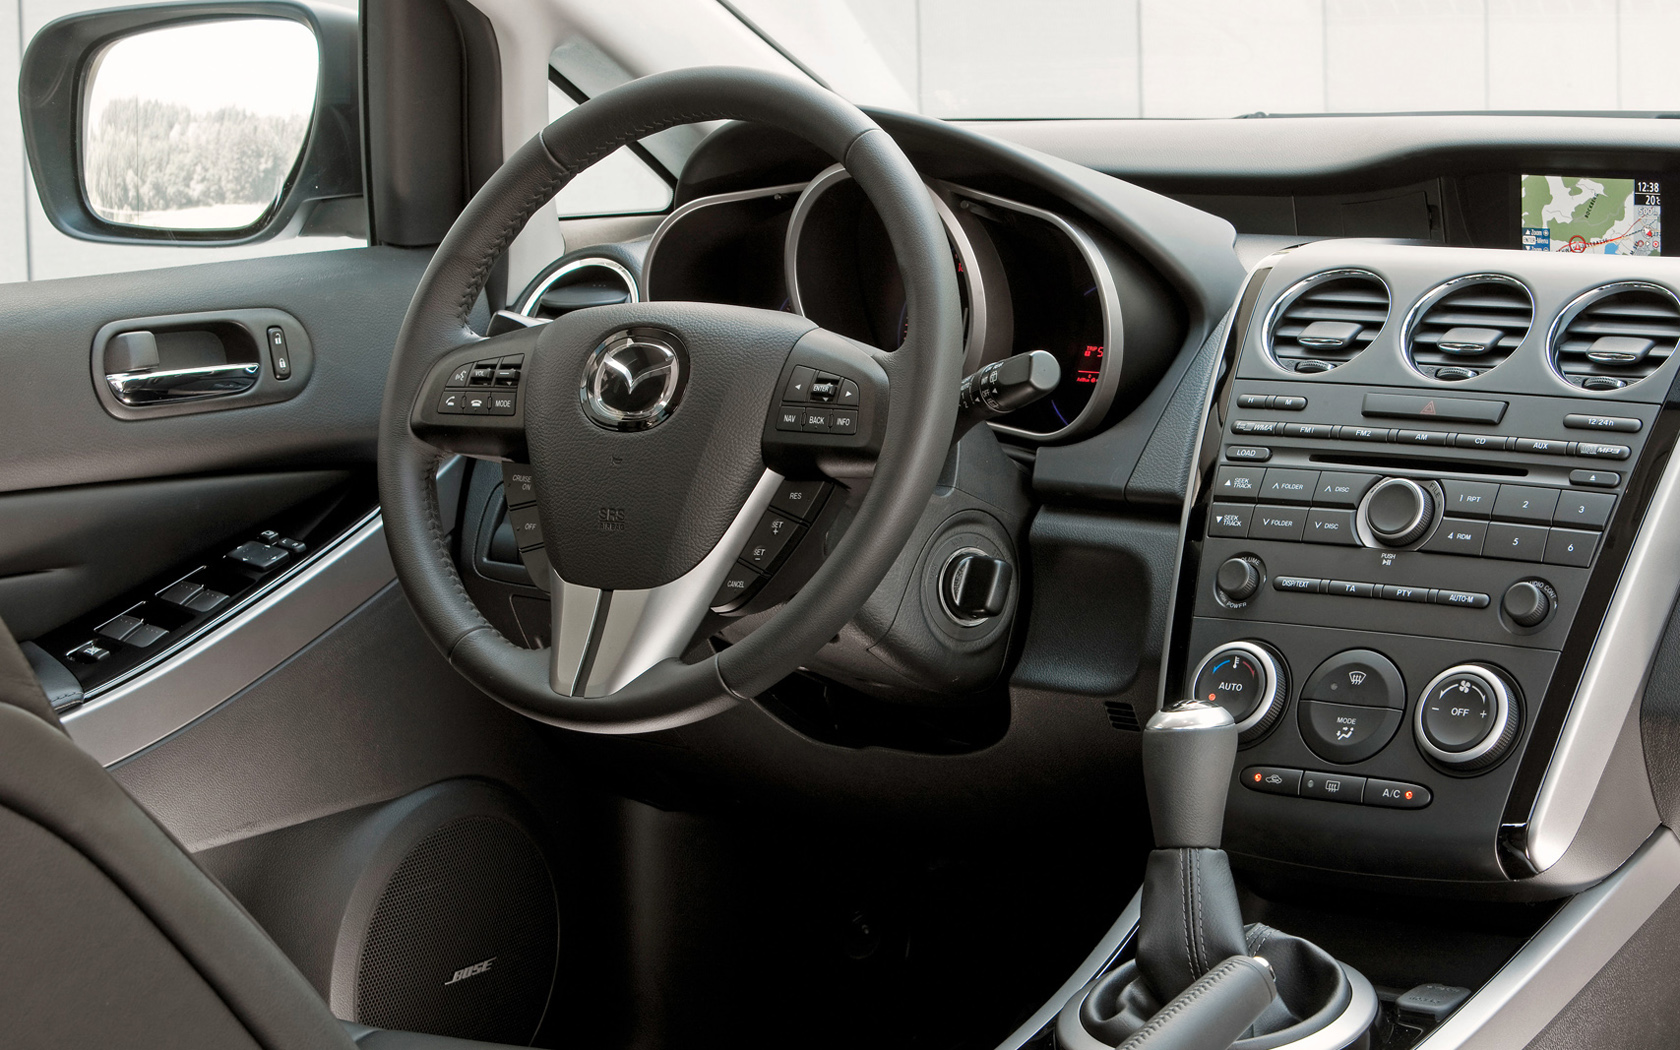 Behind the wheel of the Mazda CX 7